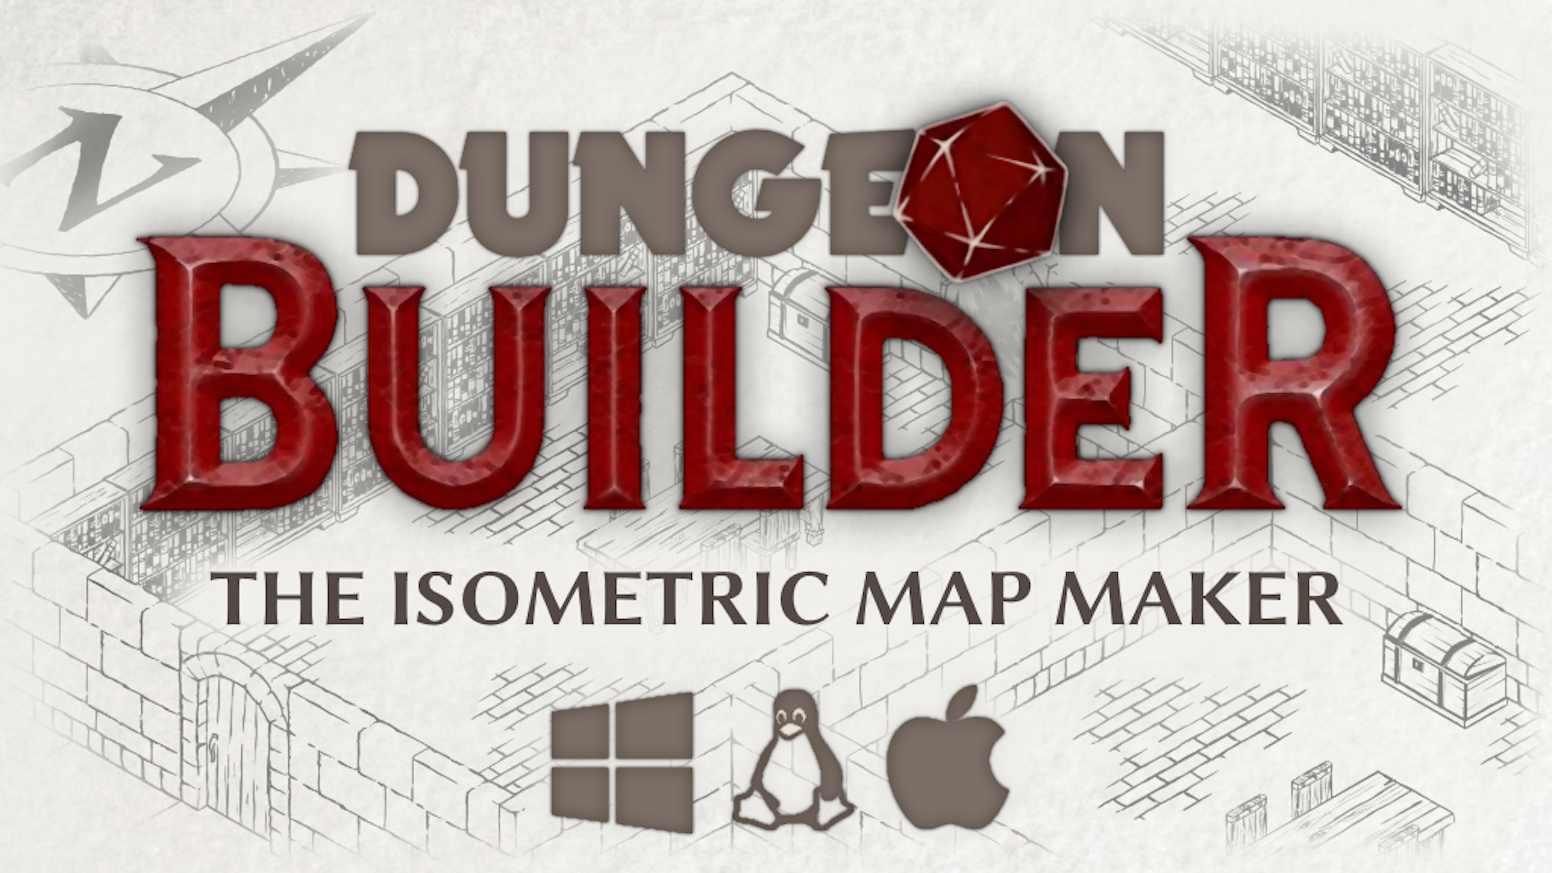 Dungeon Builder: An Isometric Map Maker for Role Players by ... on dnd map of an island, dnd map size, dnd map builder, dnd map tiles, dnd map generator, dnd map marsh, dnd map online, dnd map house, dnd forest map, dnd map key, dnd city map, dnd world map,